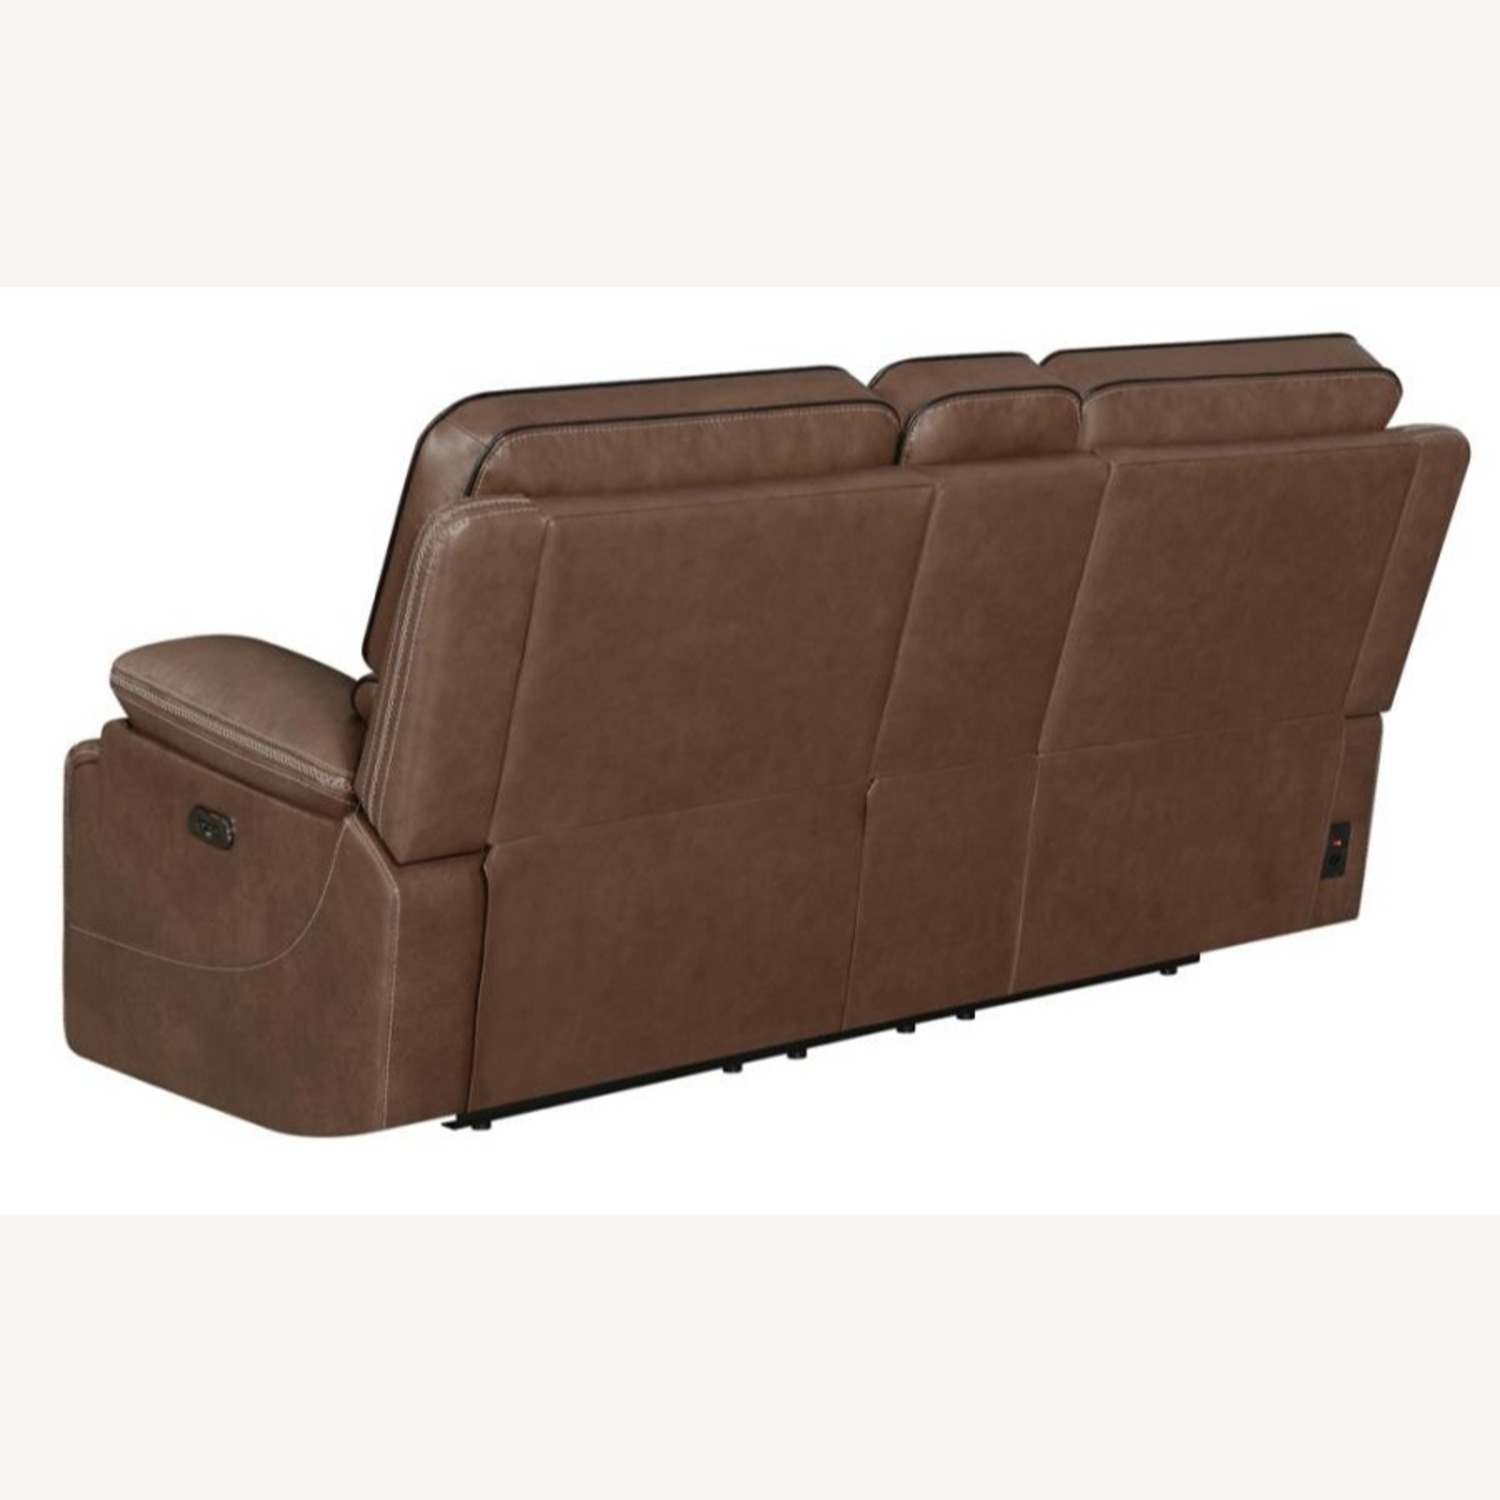 Power Loveseat In Saddle Brown W/ Reclining Seats - image-3